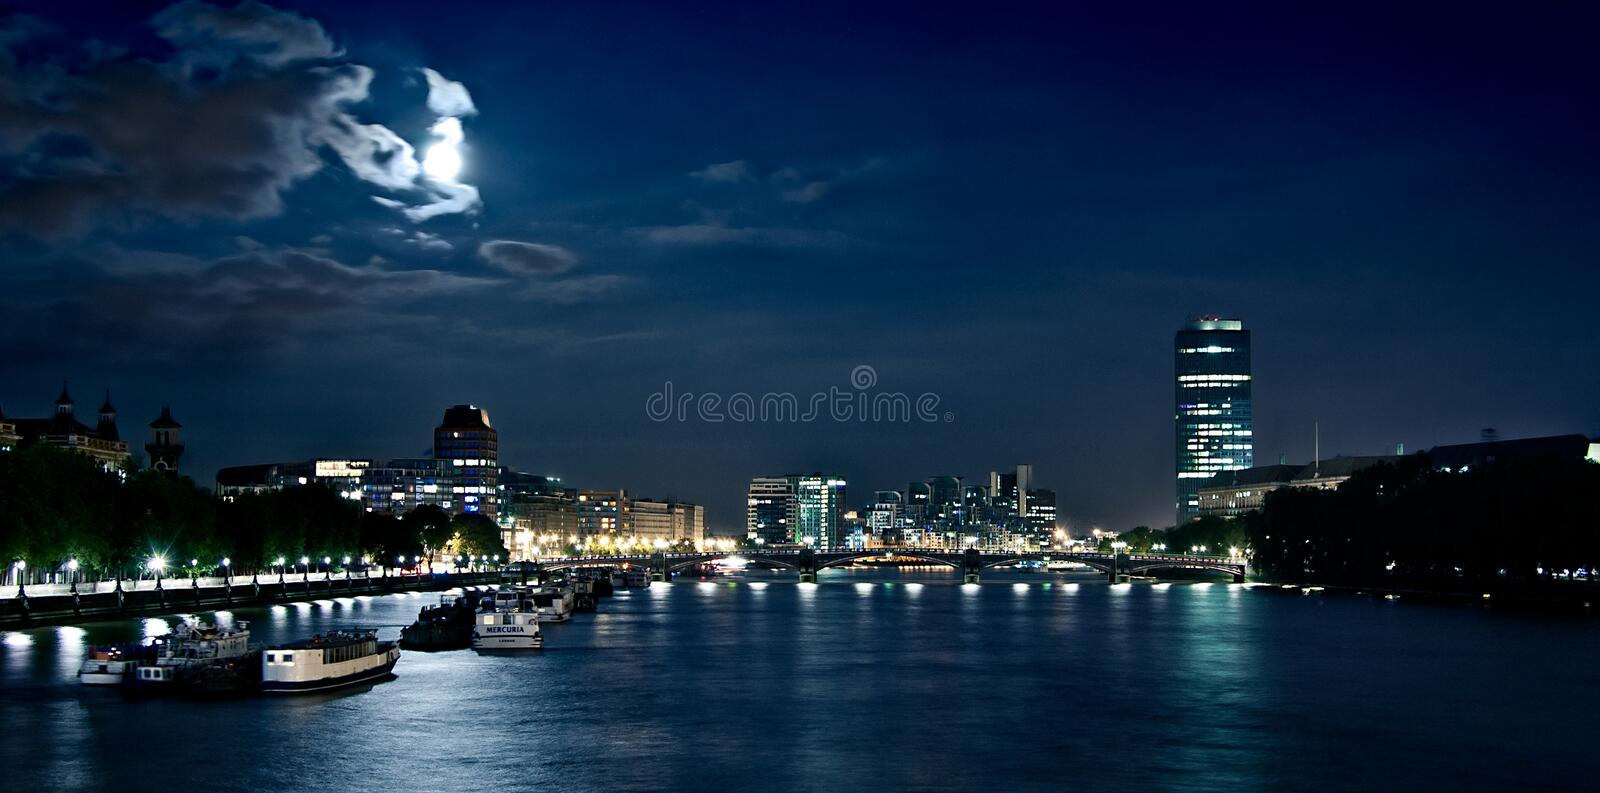 Nacht in London Dunkle Themse stockfotografie